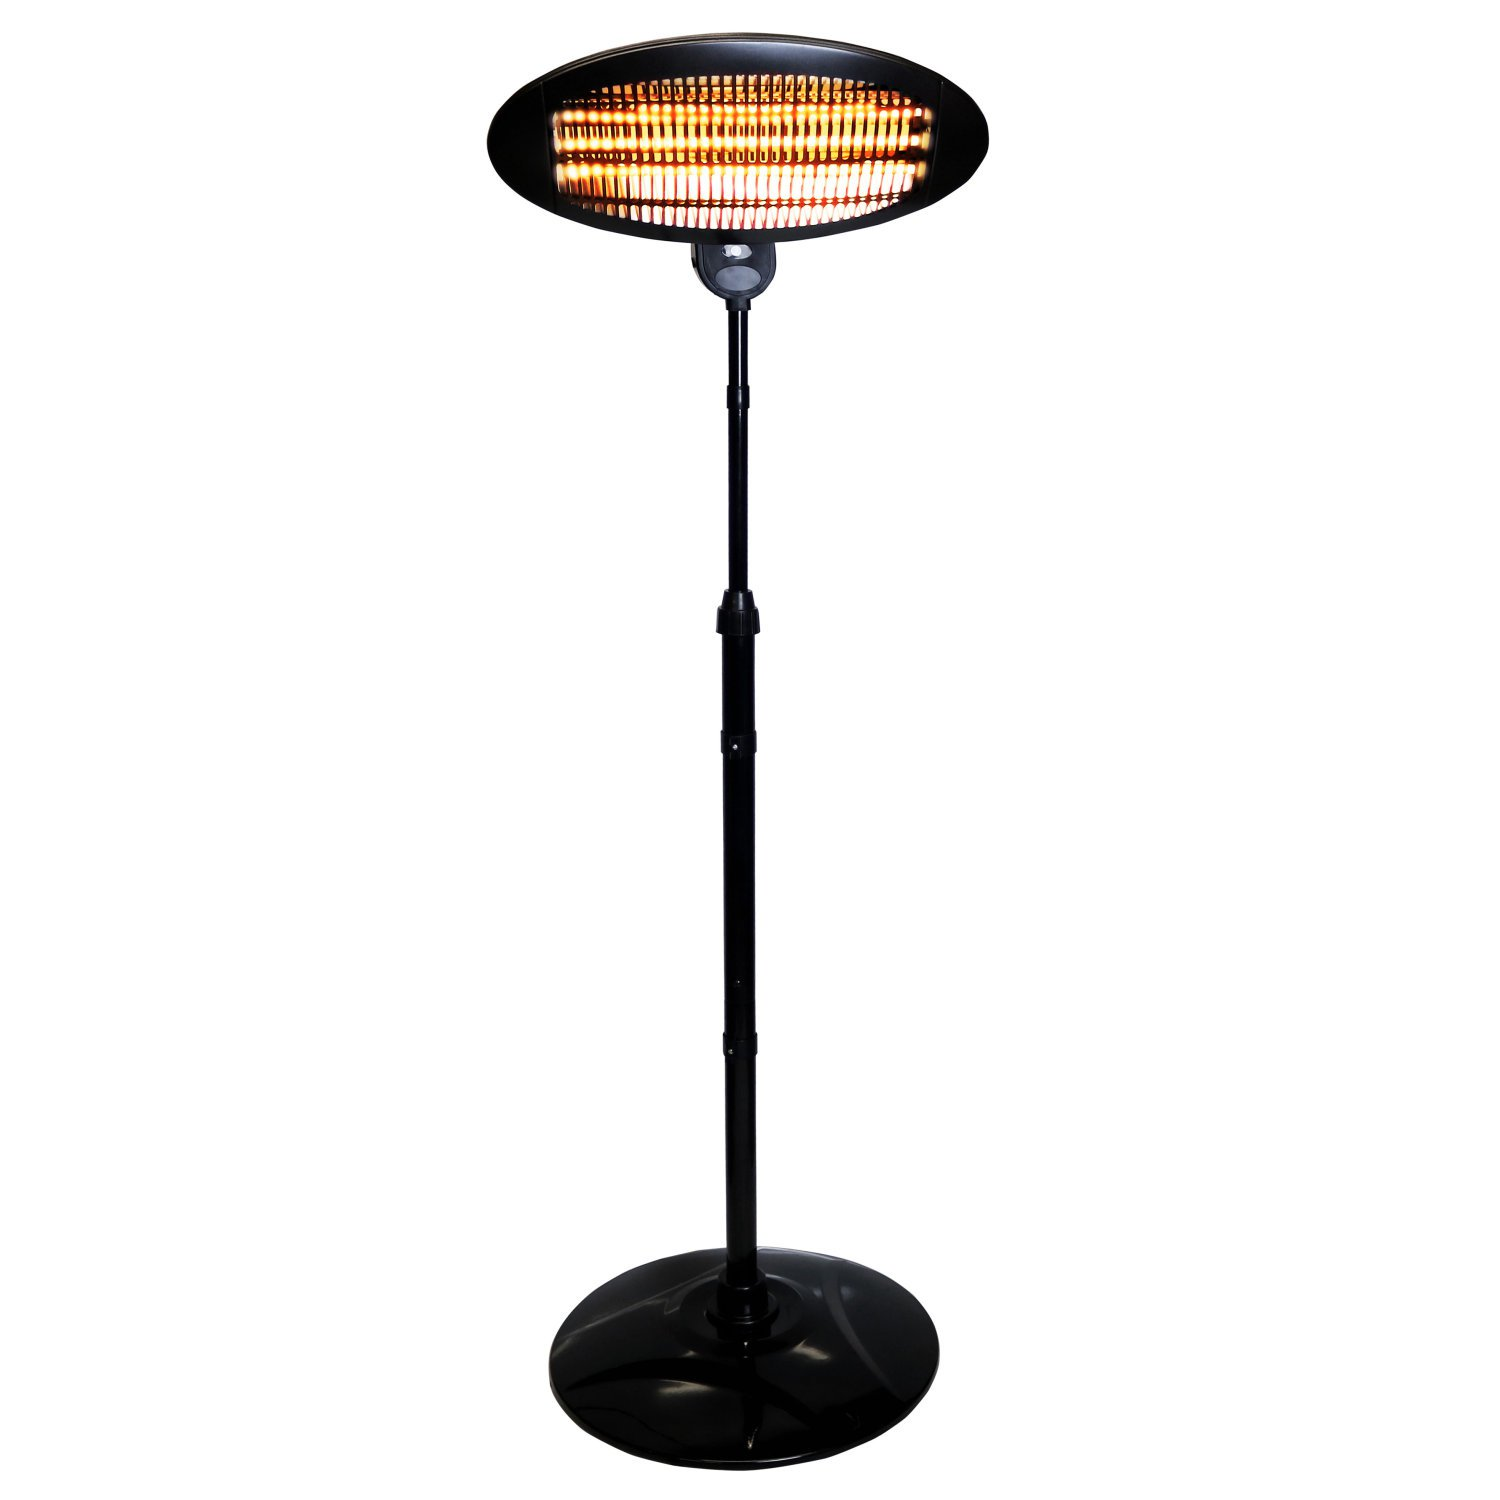 2KW Quartz Free Standing Outdoor Electric Garden Patio Heater